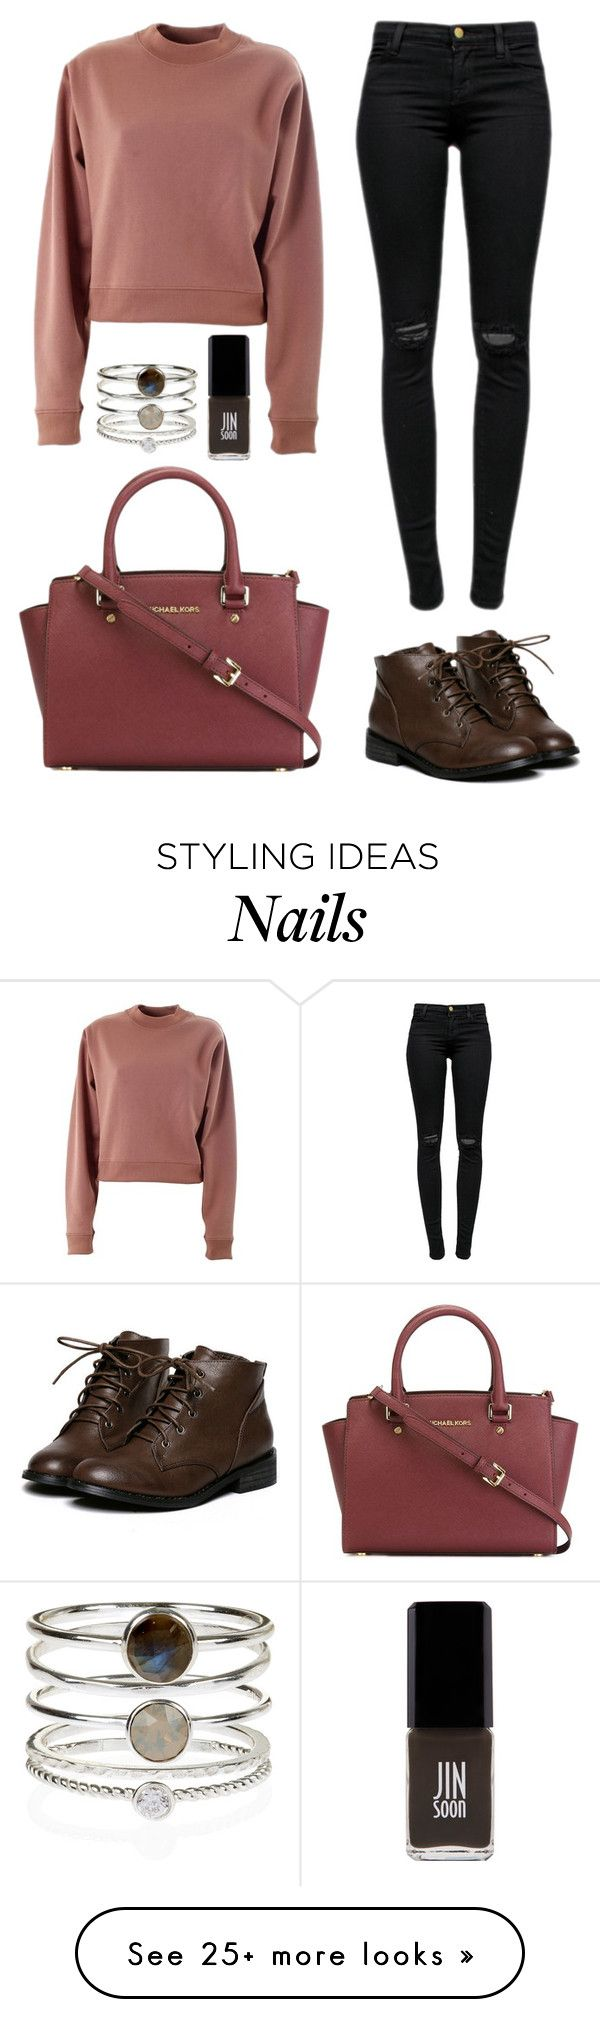 """Like it"" by honeyat on Polyvore featuring J Brand, Jin Soon, Acne Studios, Accessorize and MICHAEL Michael Kors"